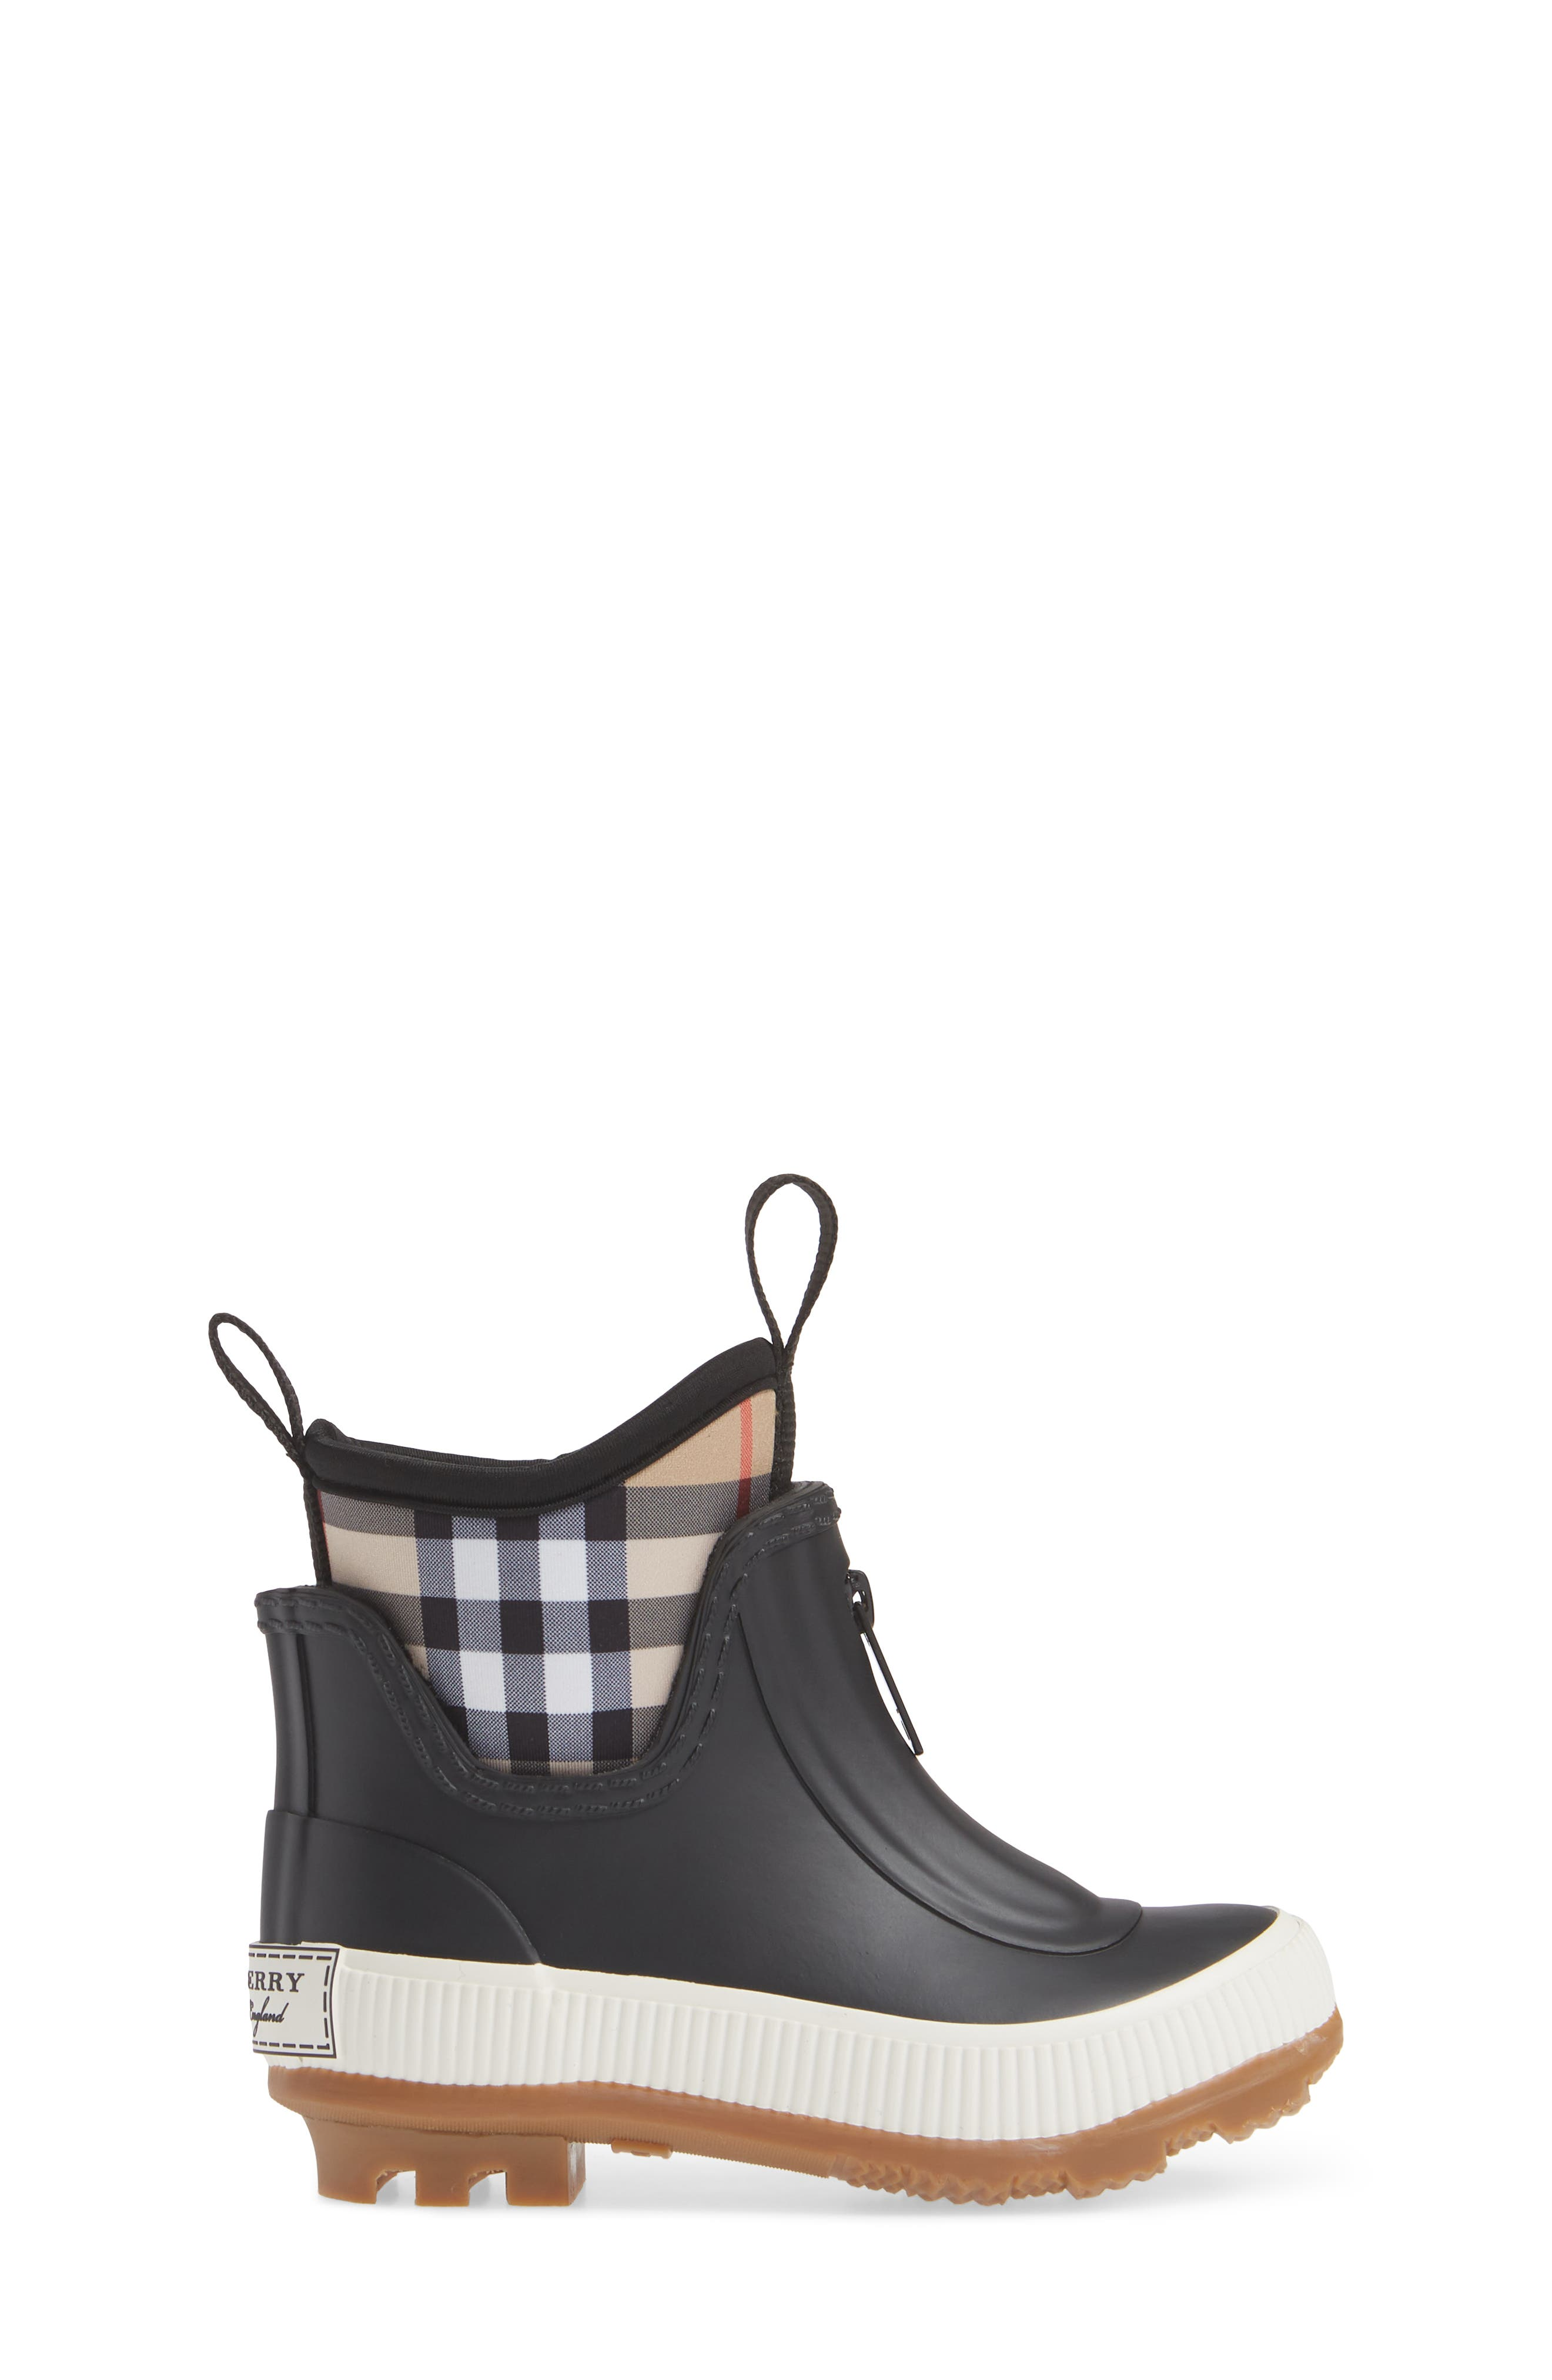 BURBERRY,                             Flinton Waterproof Rain Boot,                             Alternate thumbnail 3, color,                             BLACK